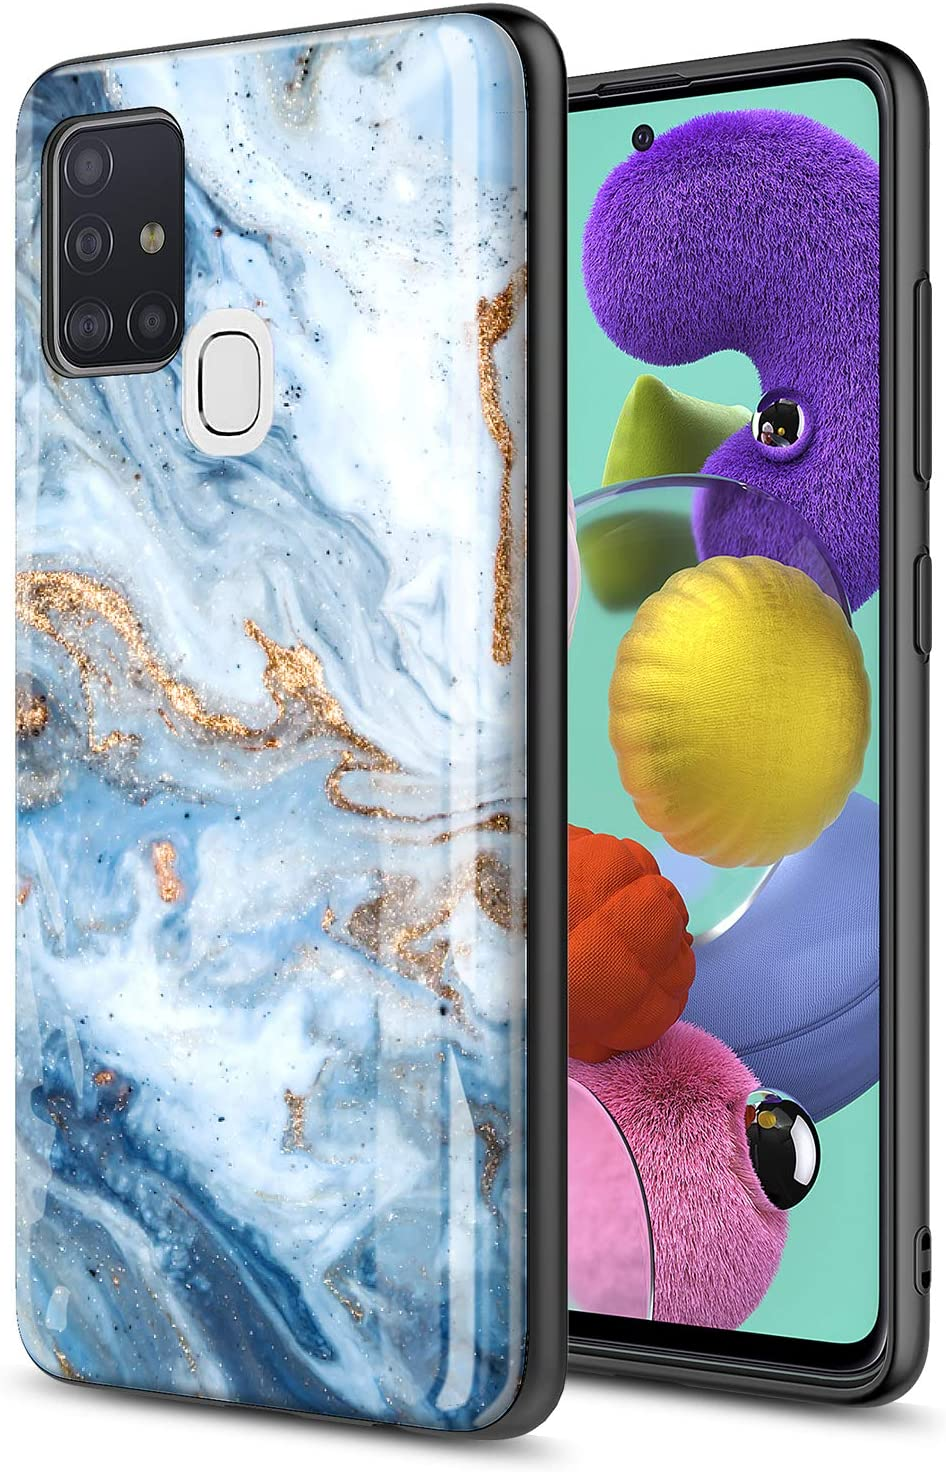 GORGCASE Phone CASE for Samsung Galaxy A21S (NOT FIT A21), Slim Graphic Design Anti-Scratch Shook-Proof Hybrid Rubber PC TPU Bumper Armor Cute Teen Girls Women Drop Protective Cover Blue Marble